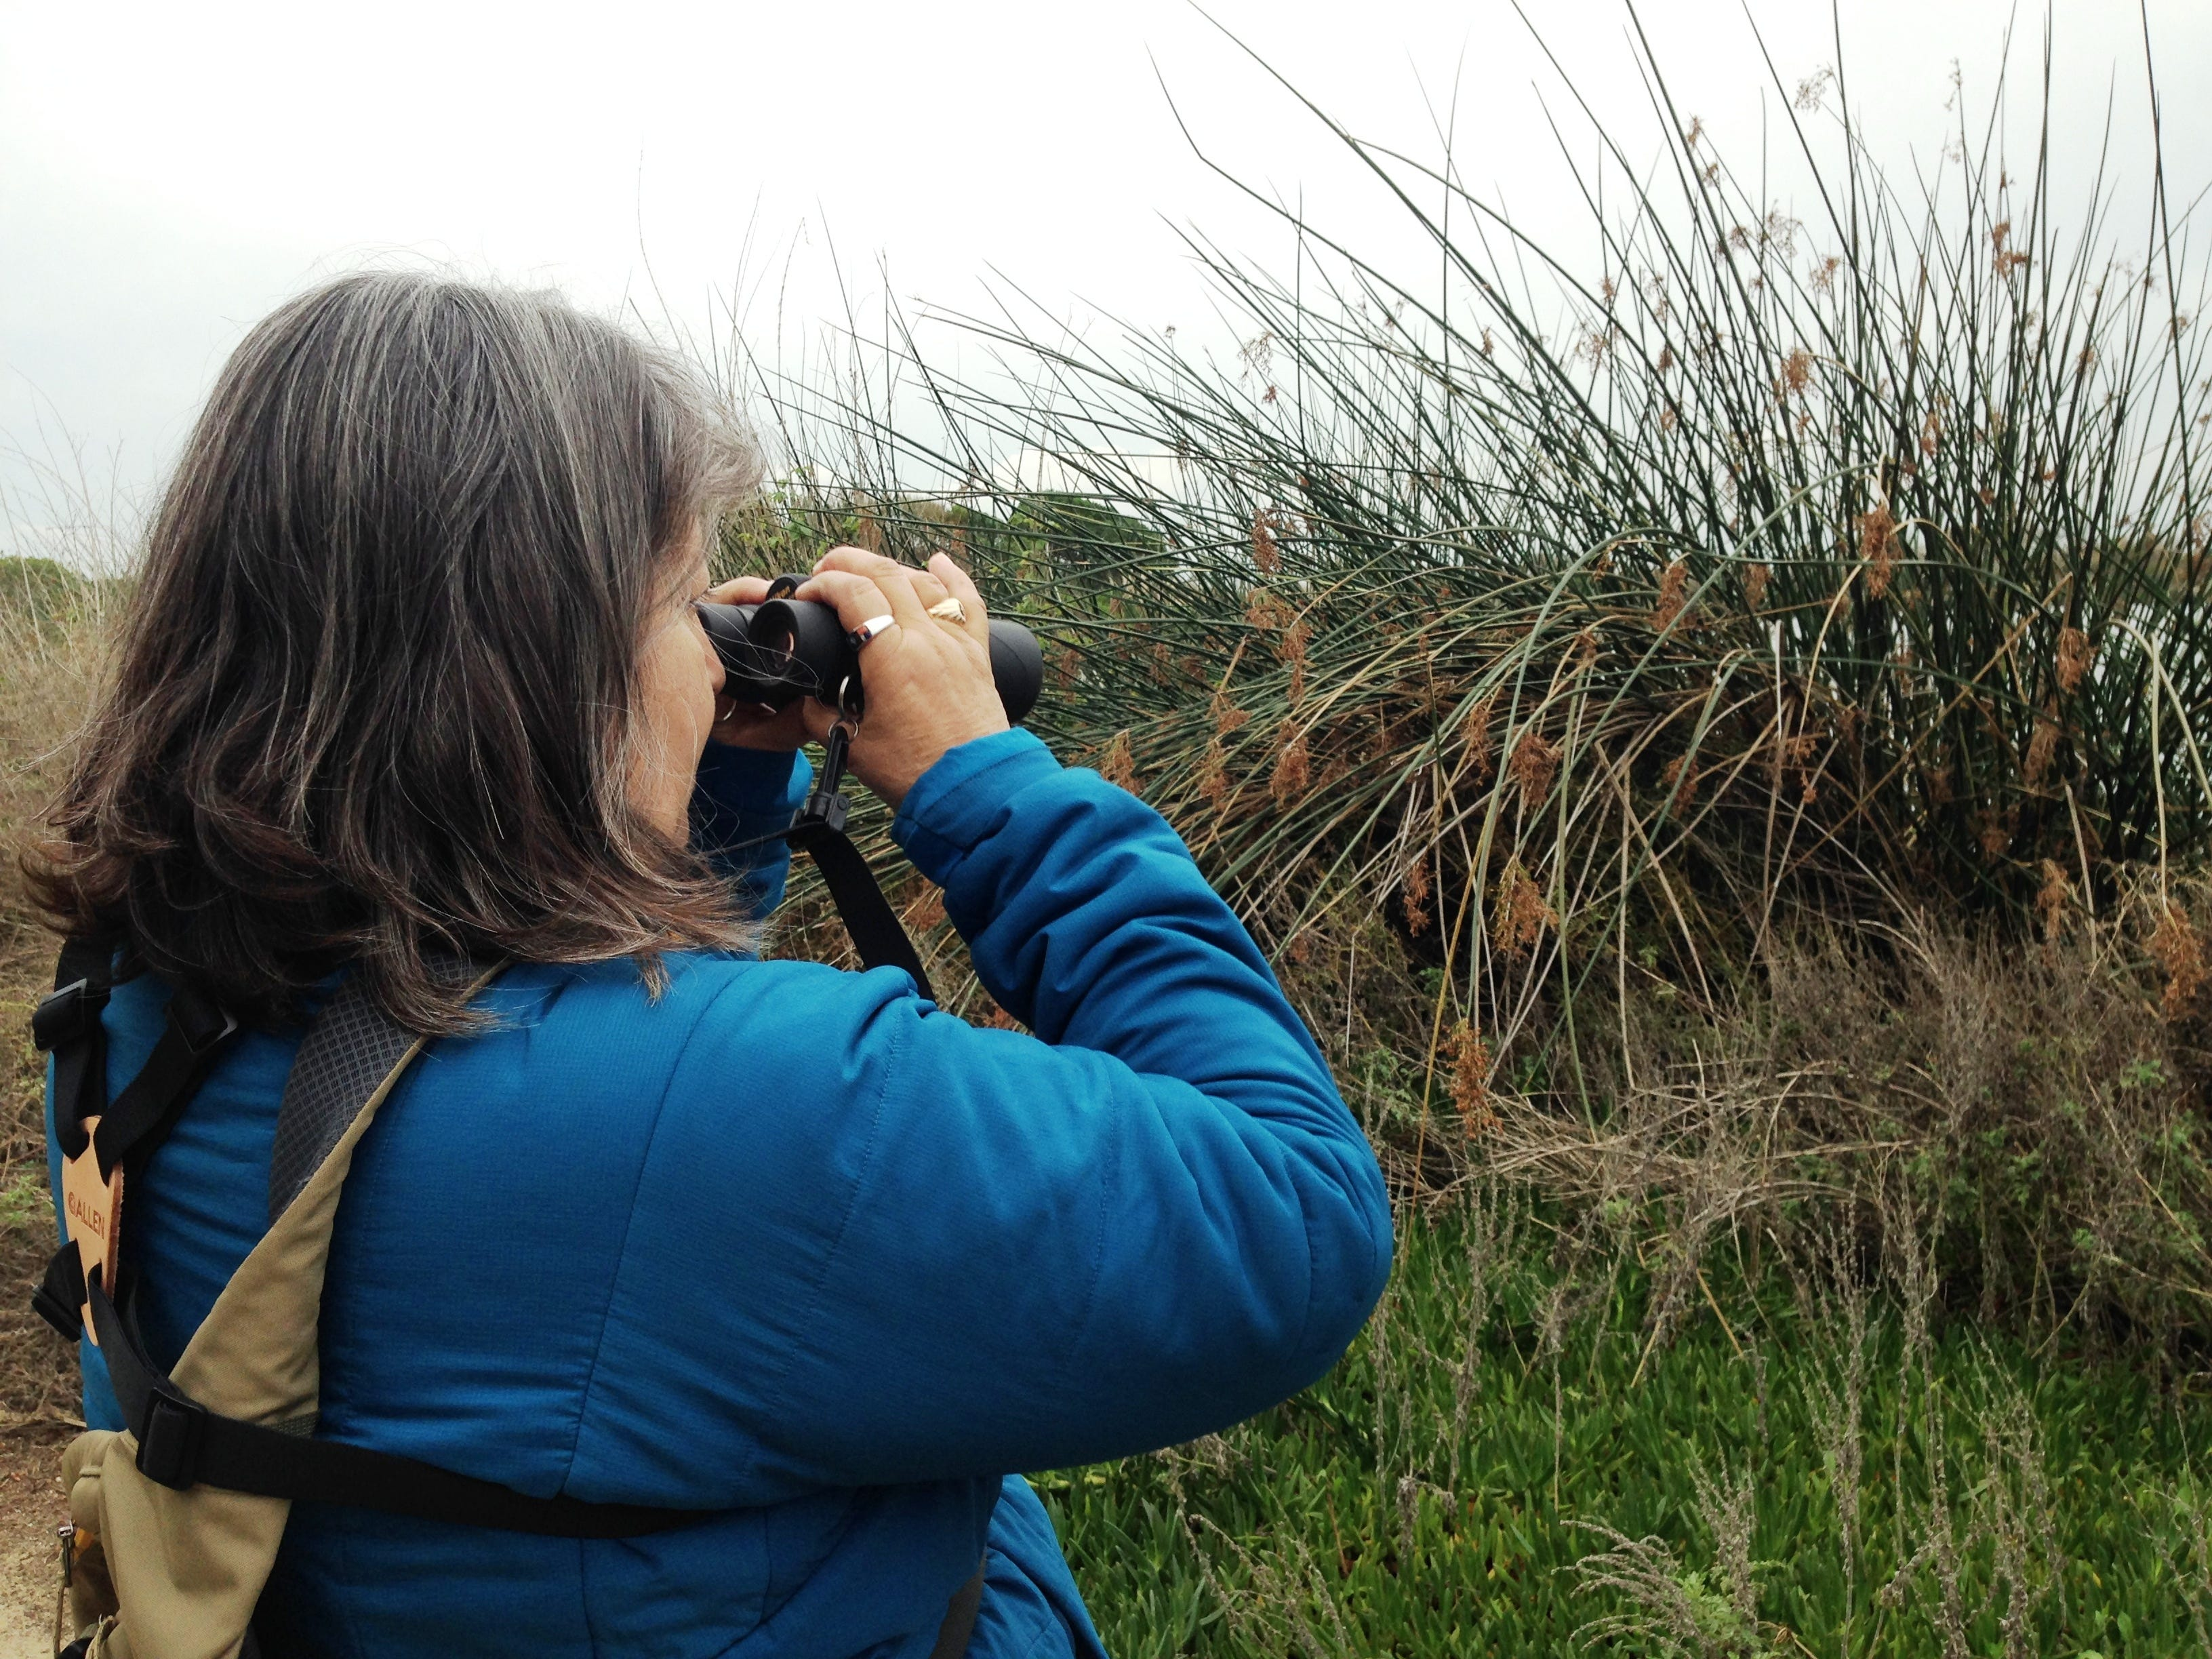 Susanna Corez look at ducks and other birds during the Christmas Bird Count on Saturday at the Ventura settling ponds. This year's local effort is part of the 119th Christmas Bird Count conducted by the National Audubon Society.